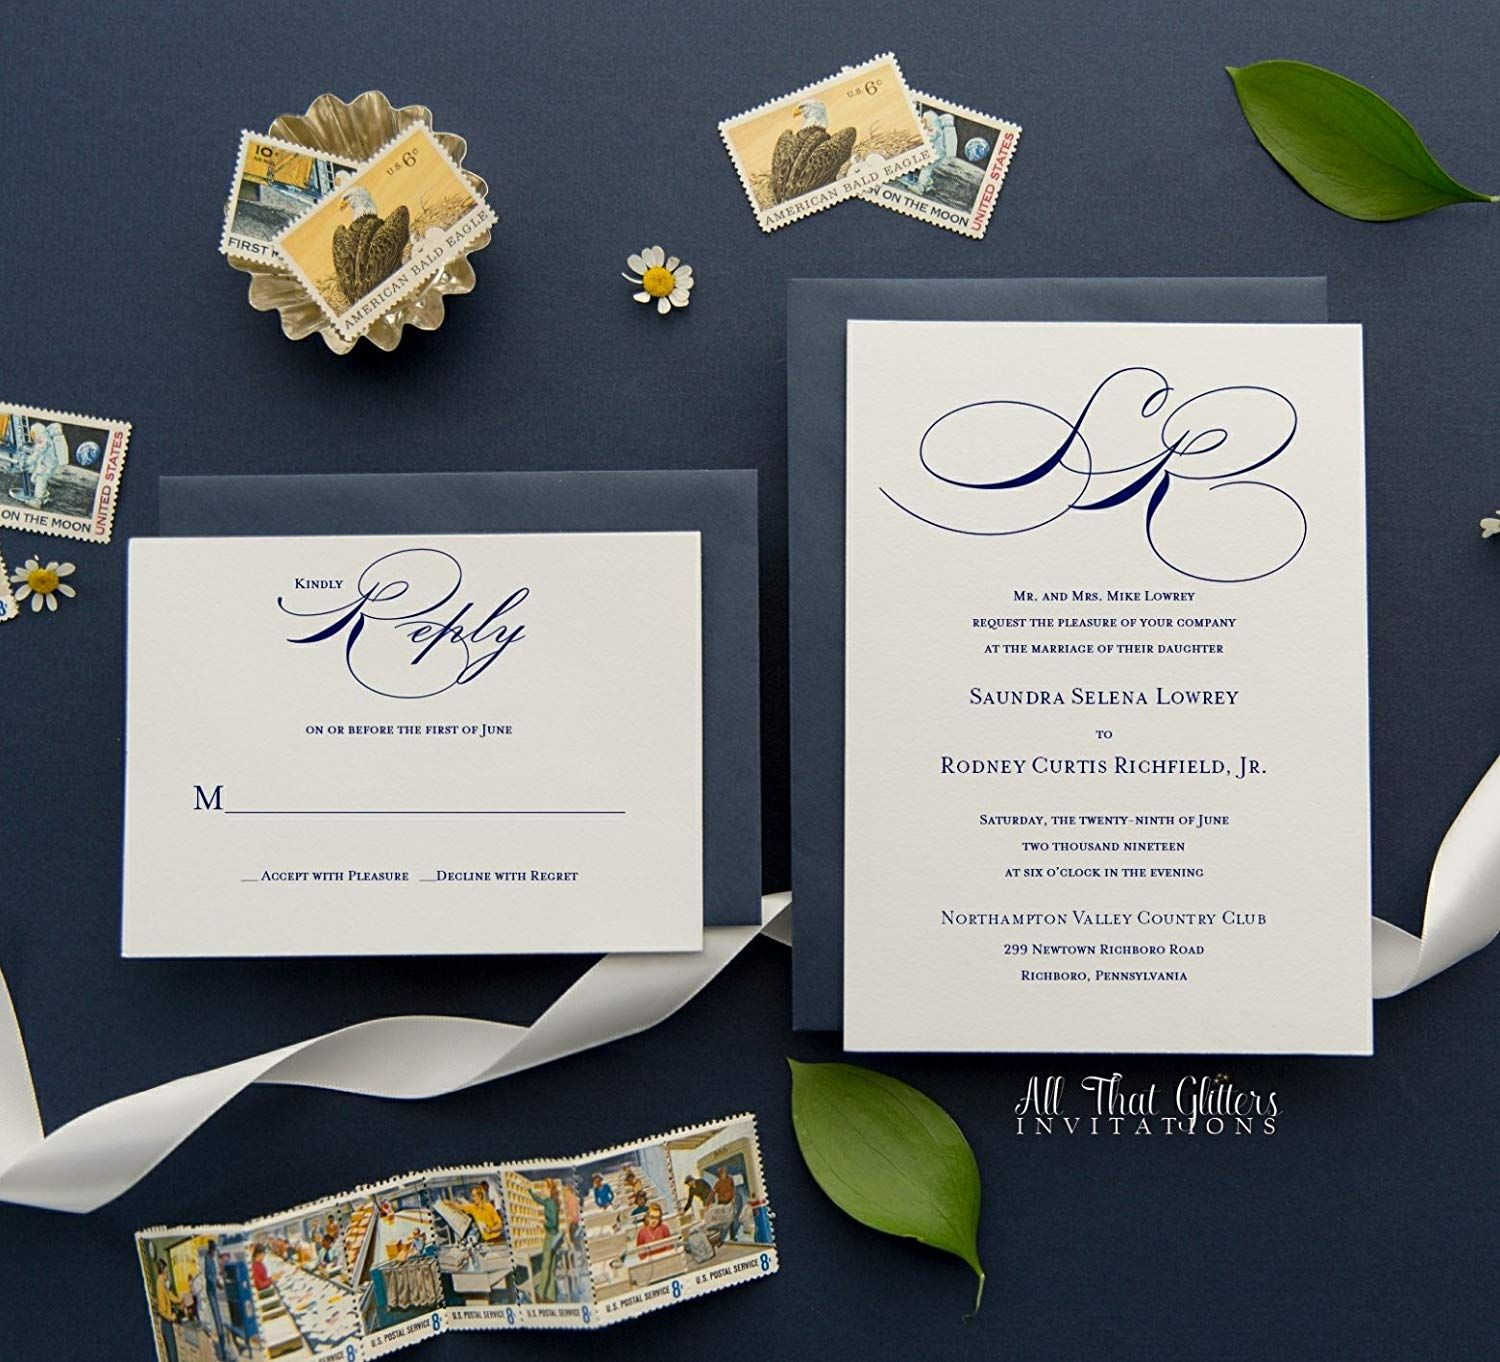 Also Finding Cheap Wedding Invitations On The Internet Is Very Easy Because There Are In 2020 Cheap Wedding Invitations Printing Wedding Invitations Cheap Invitations